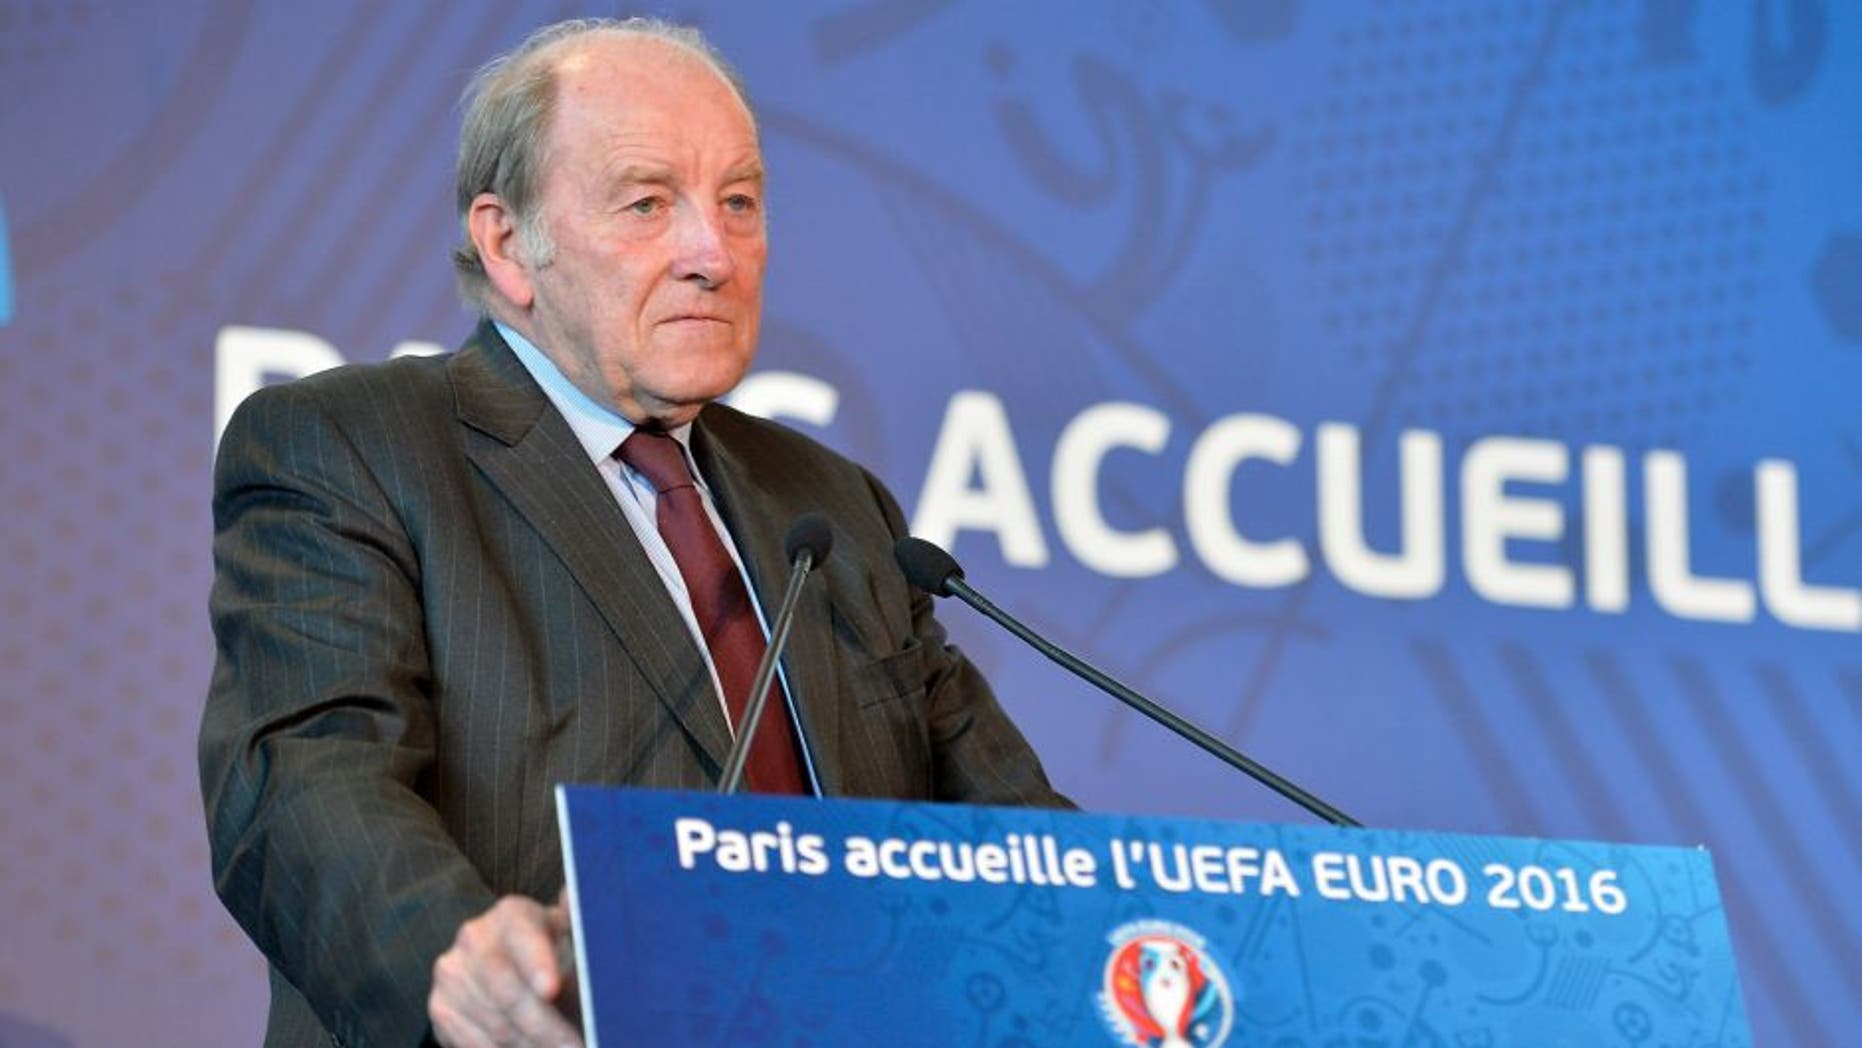 PARIS, FRANCE - JUNE 16: Jacques Lambert President of the organisation of Euro 2016 gives a press conference on Euro 2016 on June 16, 2015 in Paris, France. He gave details about the organisation of the competition itself and explained the differents animations around Paris during the competition. (Photo by Aurelien Meunier/Getty Images)